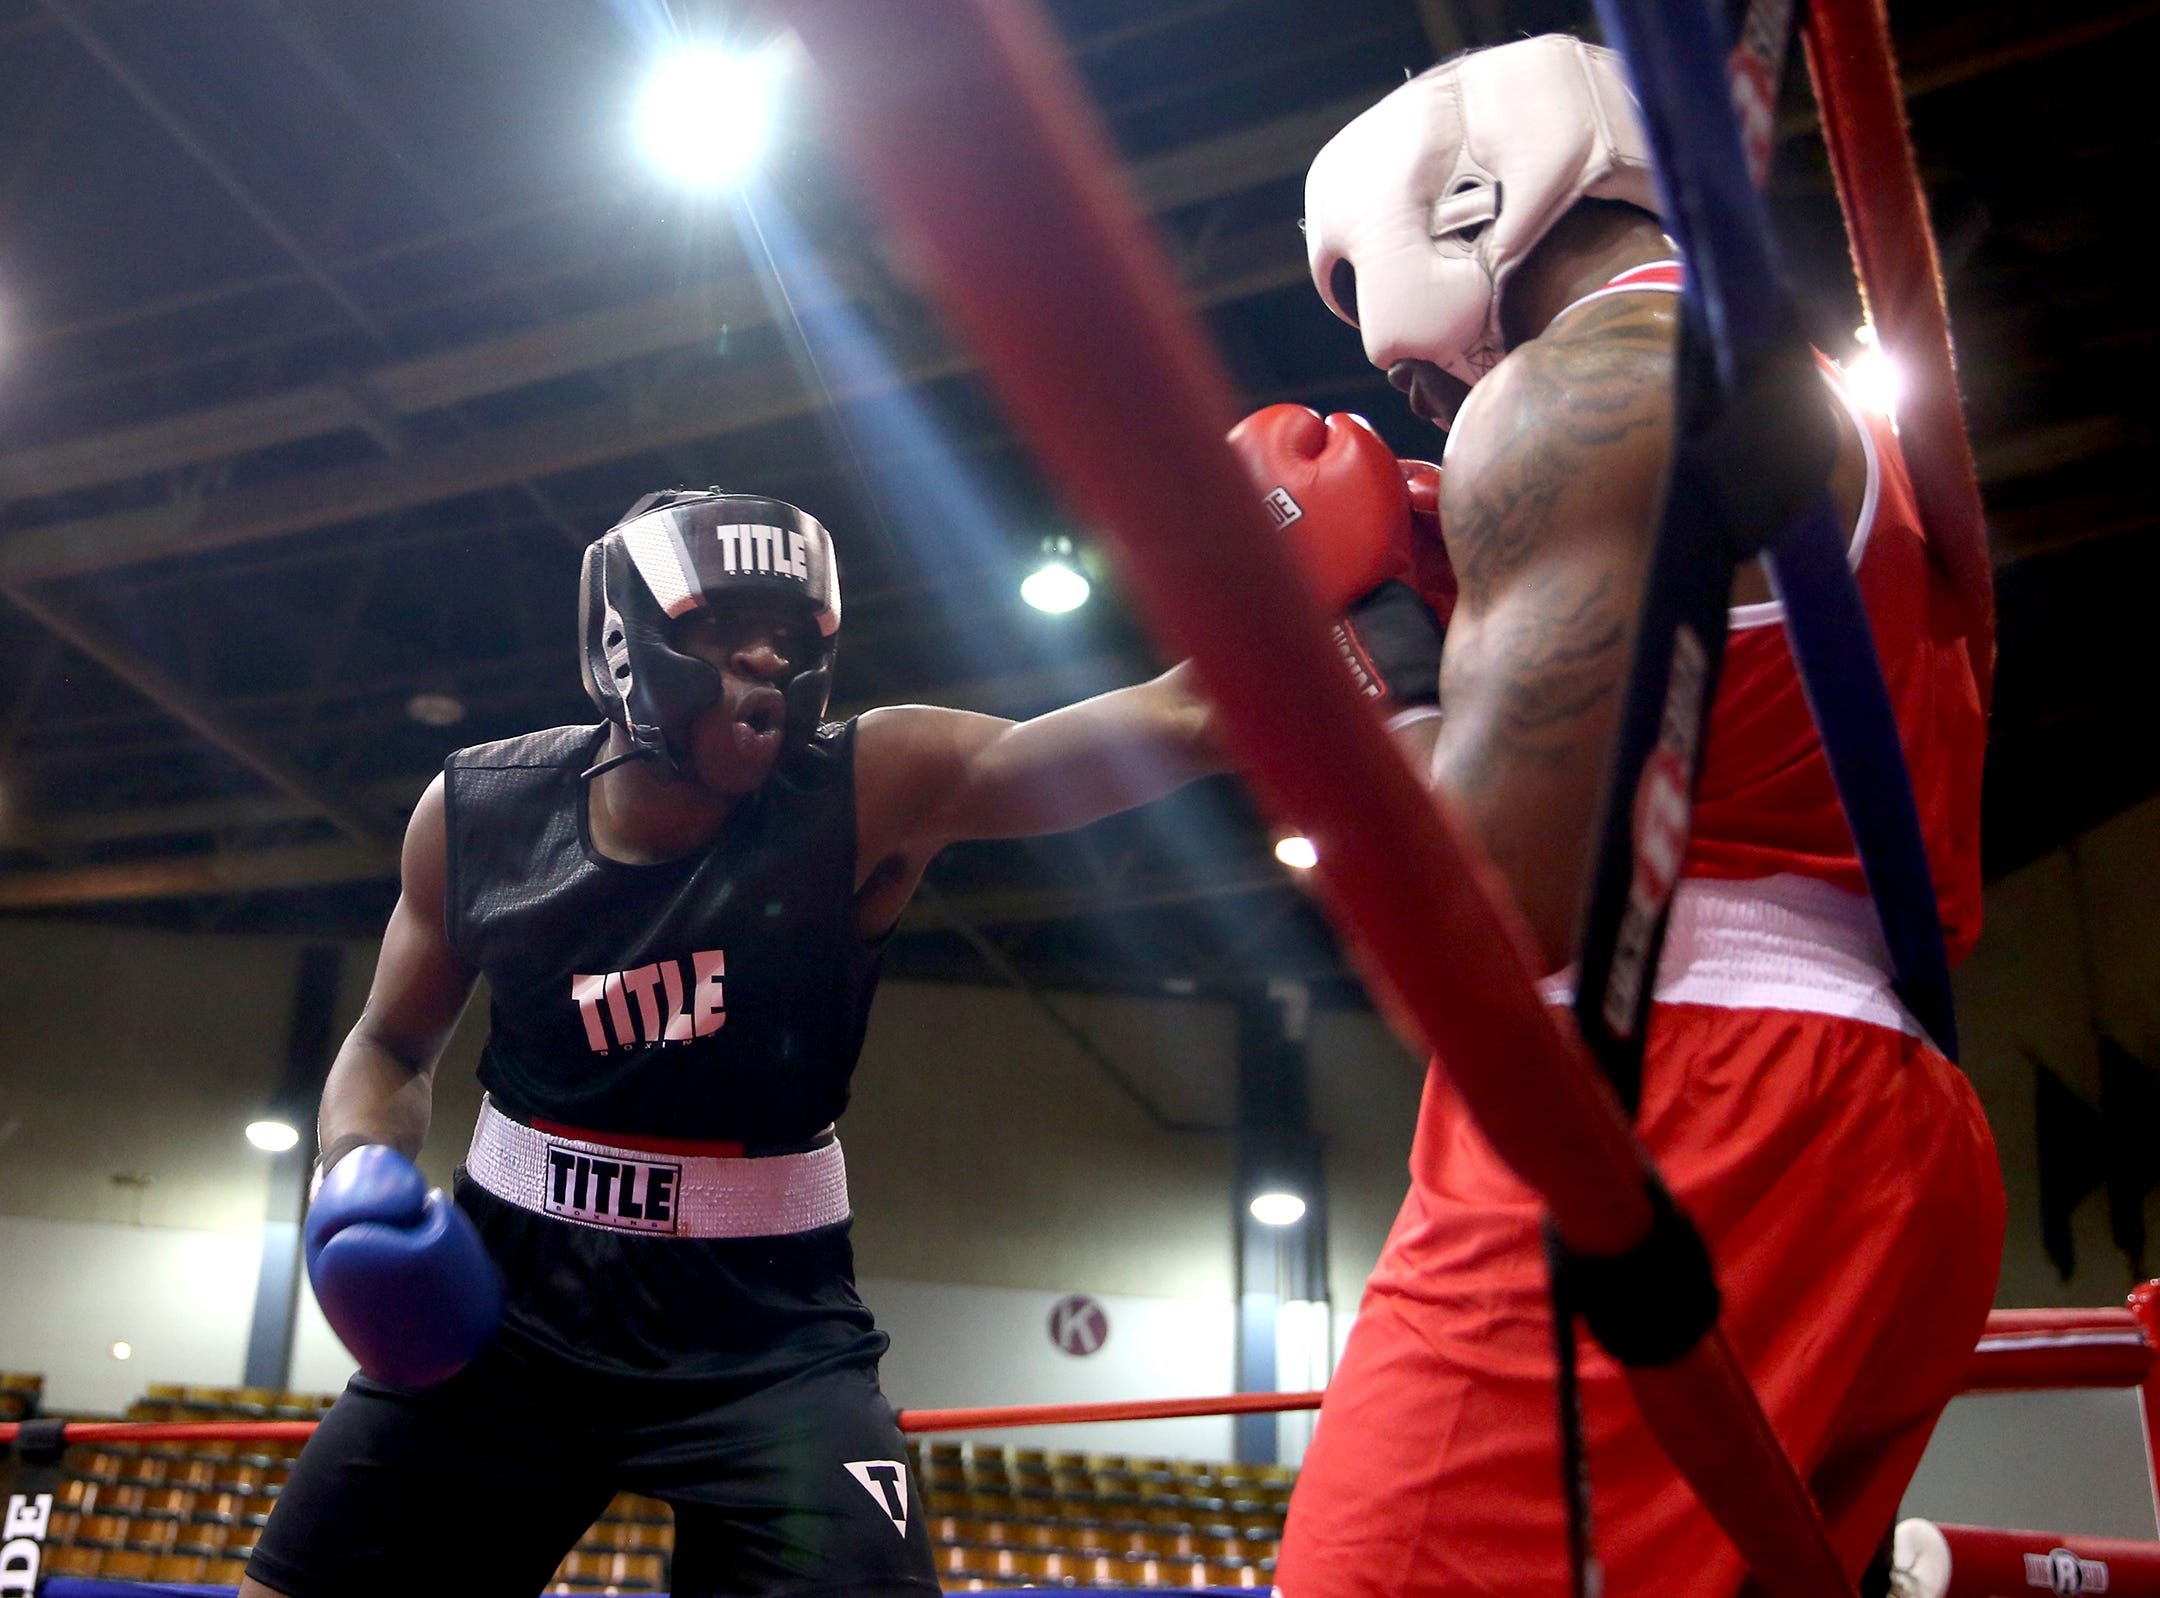 Xecareus Walker of Kent, Washington (left) takes a jab at Michad McMillan of Tigard (right) in the first bout of the Oregon Golden Gloves championship matches at the Salem Armory on Saturday, Feb. 2, 2019.